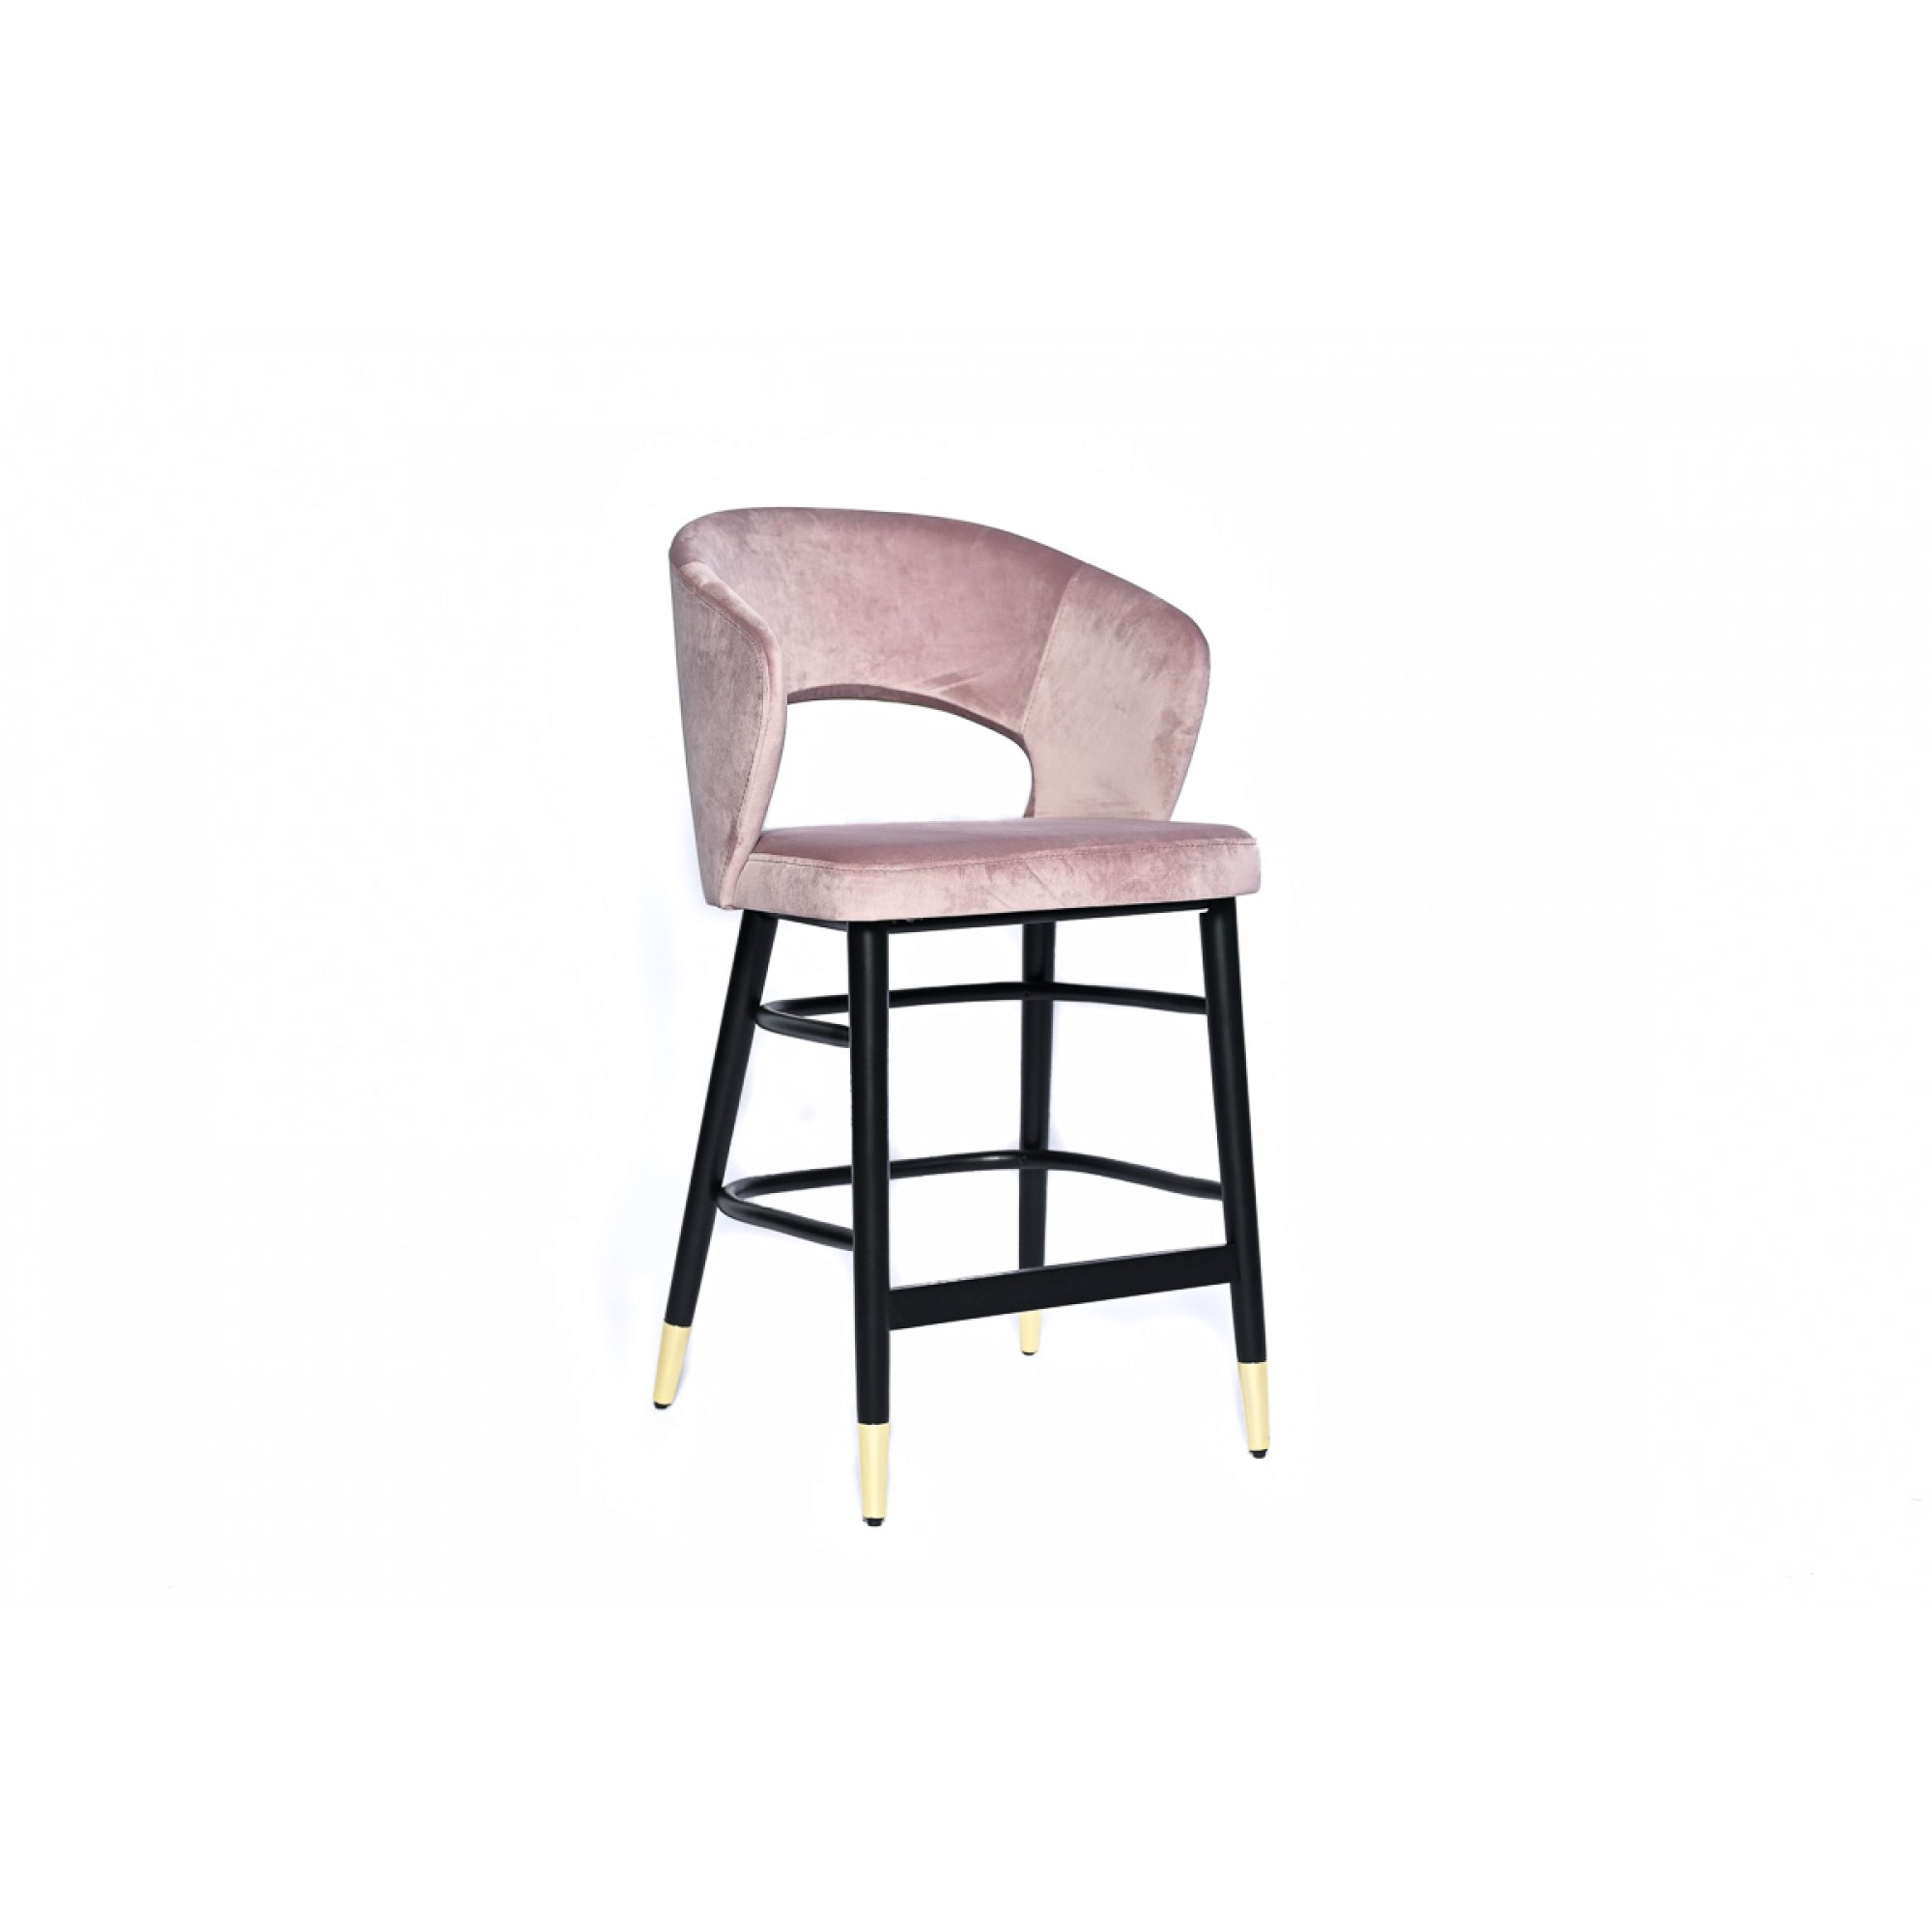 Bar chair with black wooden legs and fully upholstered in lilac velvet - SIGMA BAR